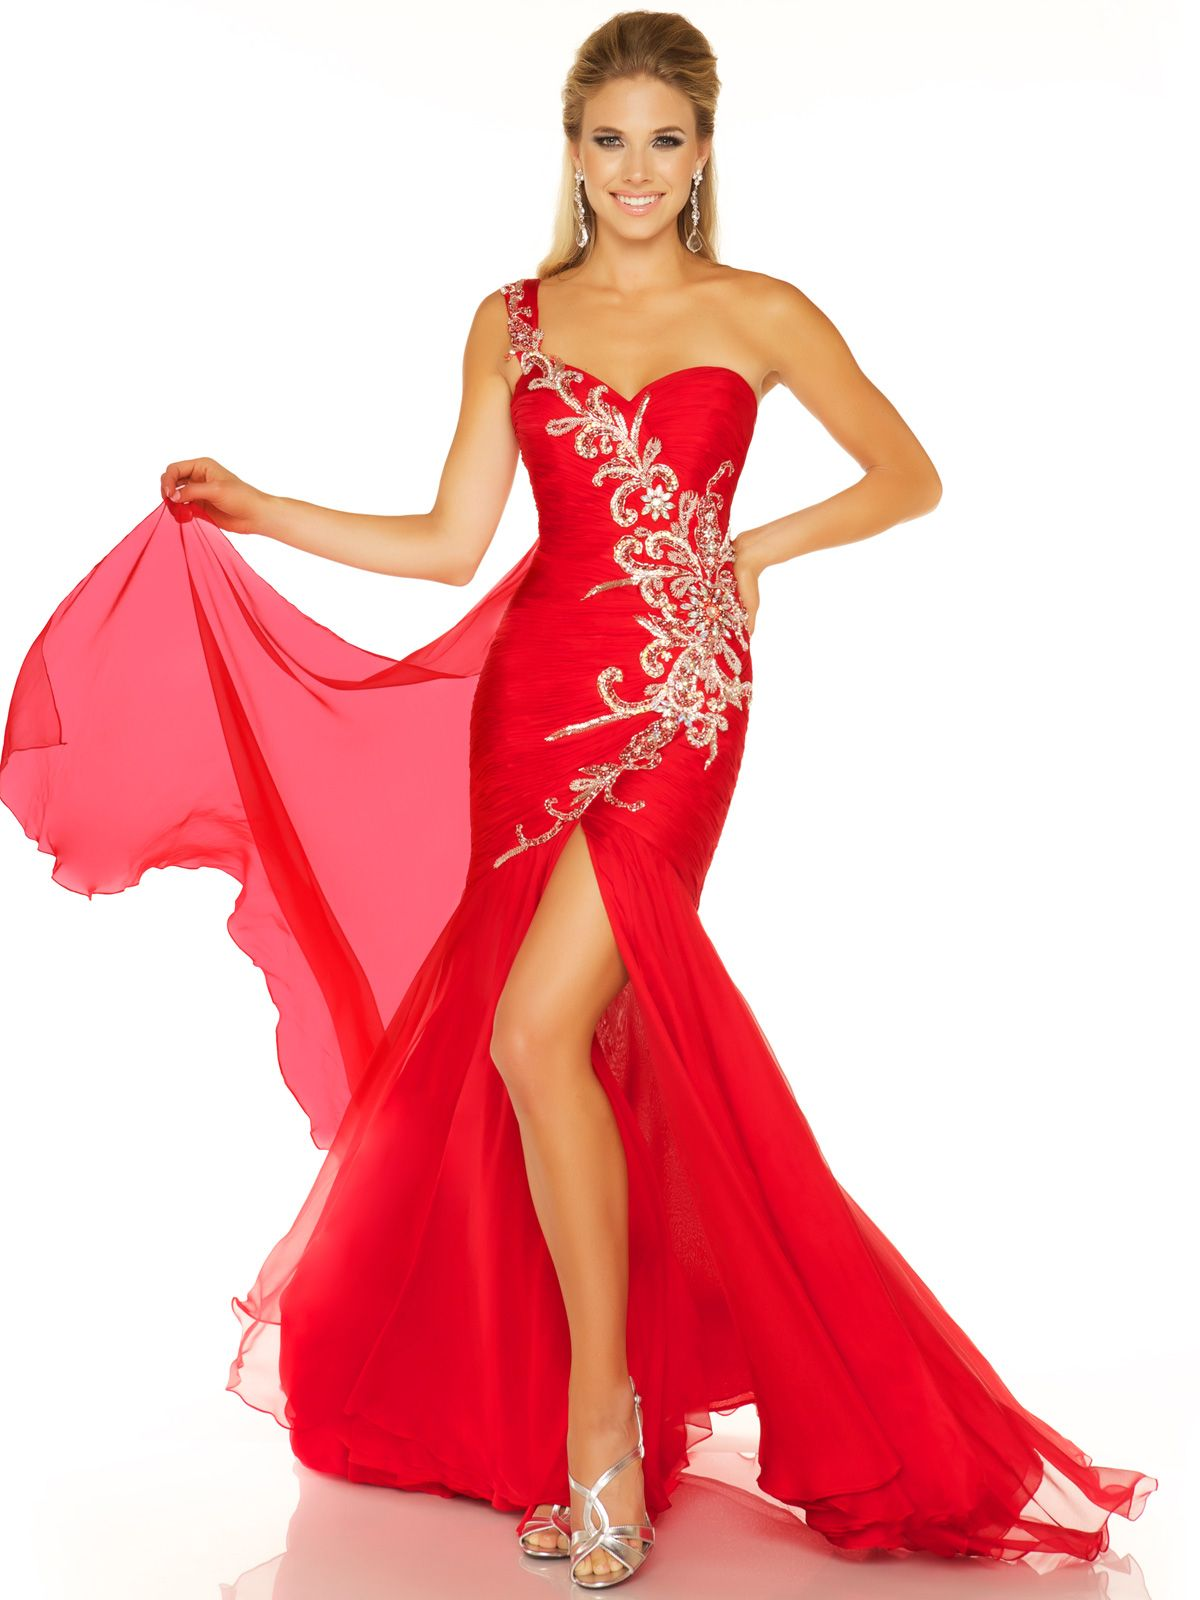 Bright Red Dresses Such As The Mac Duggal Evening Gown 6348p Look Amazing On Blonde Miss America Pageant Contestants And Th Moda Vestidos Maquillaje Para Ninas [ 1600 x 1200 Pixel ]